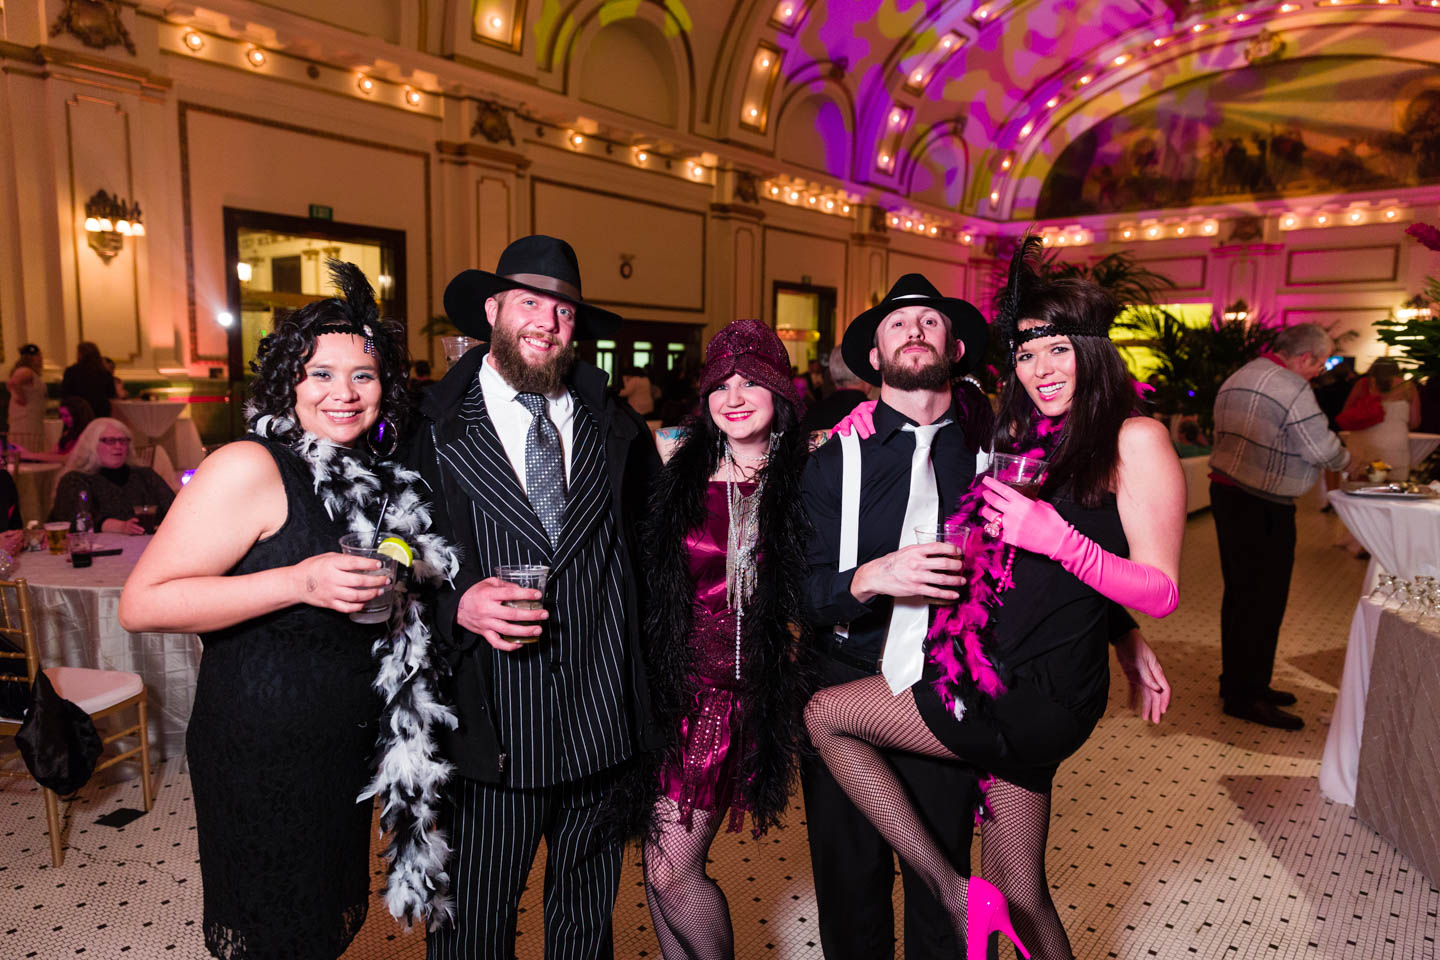 The Great Gatsby themed party and costumes